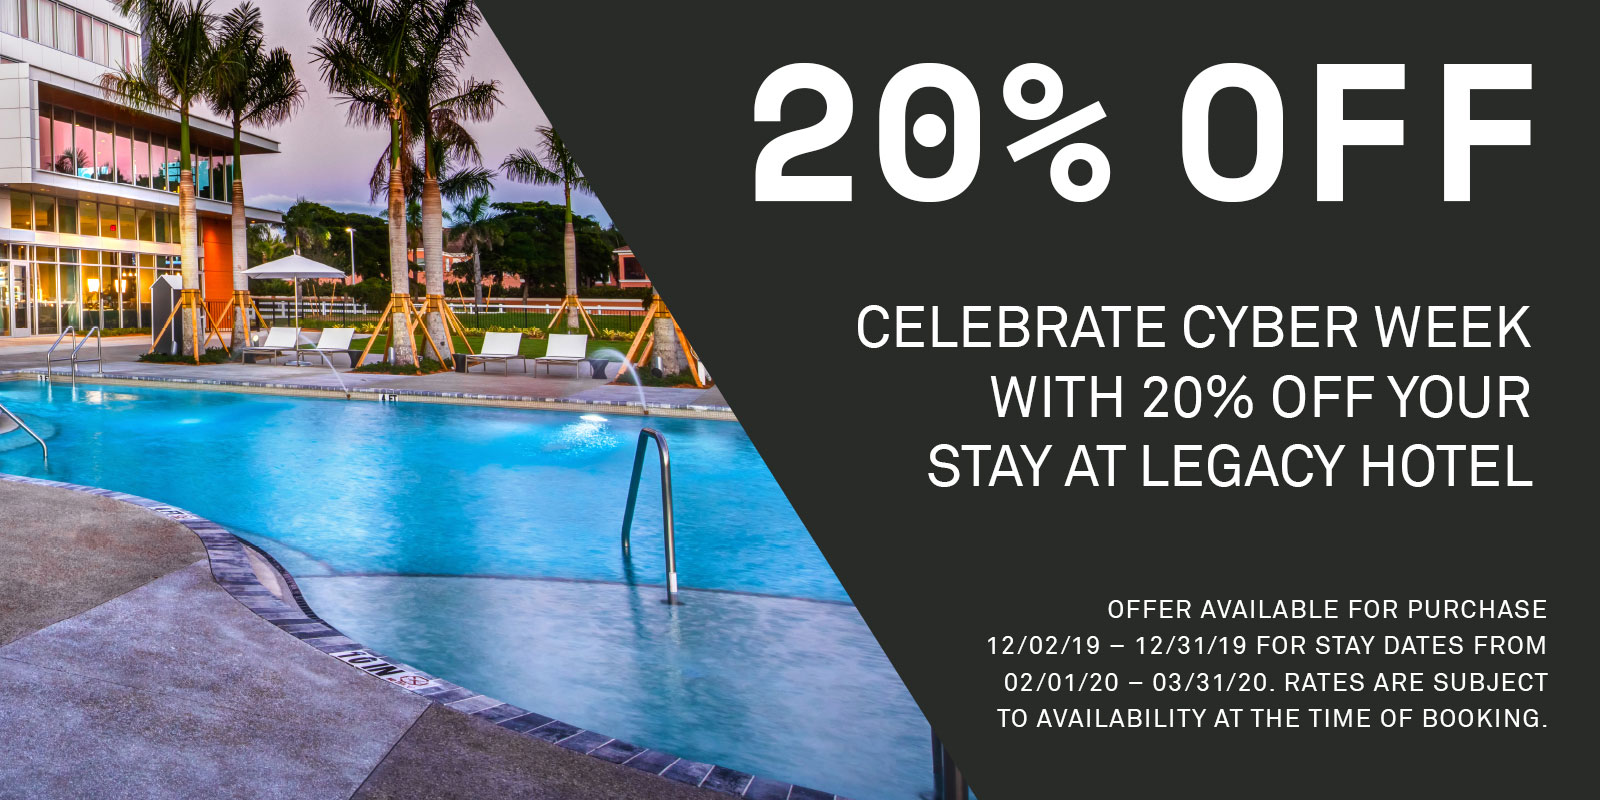 Save 25% at Legacy Hotel for Black Friday. Book now.